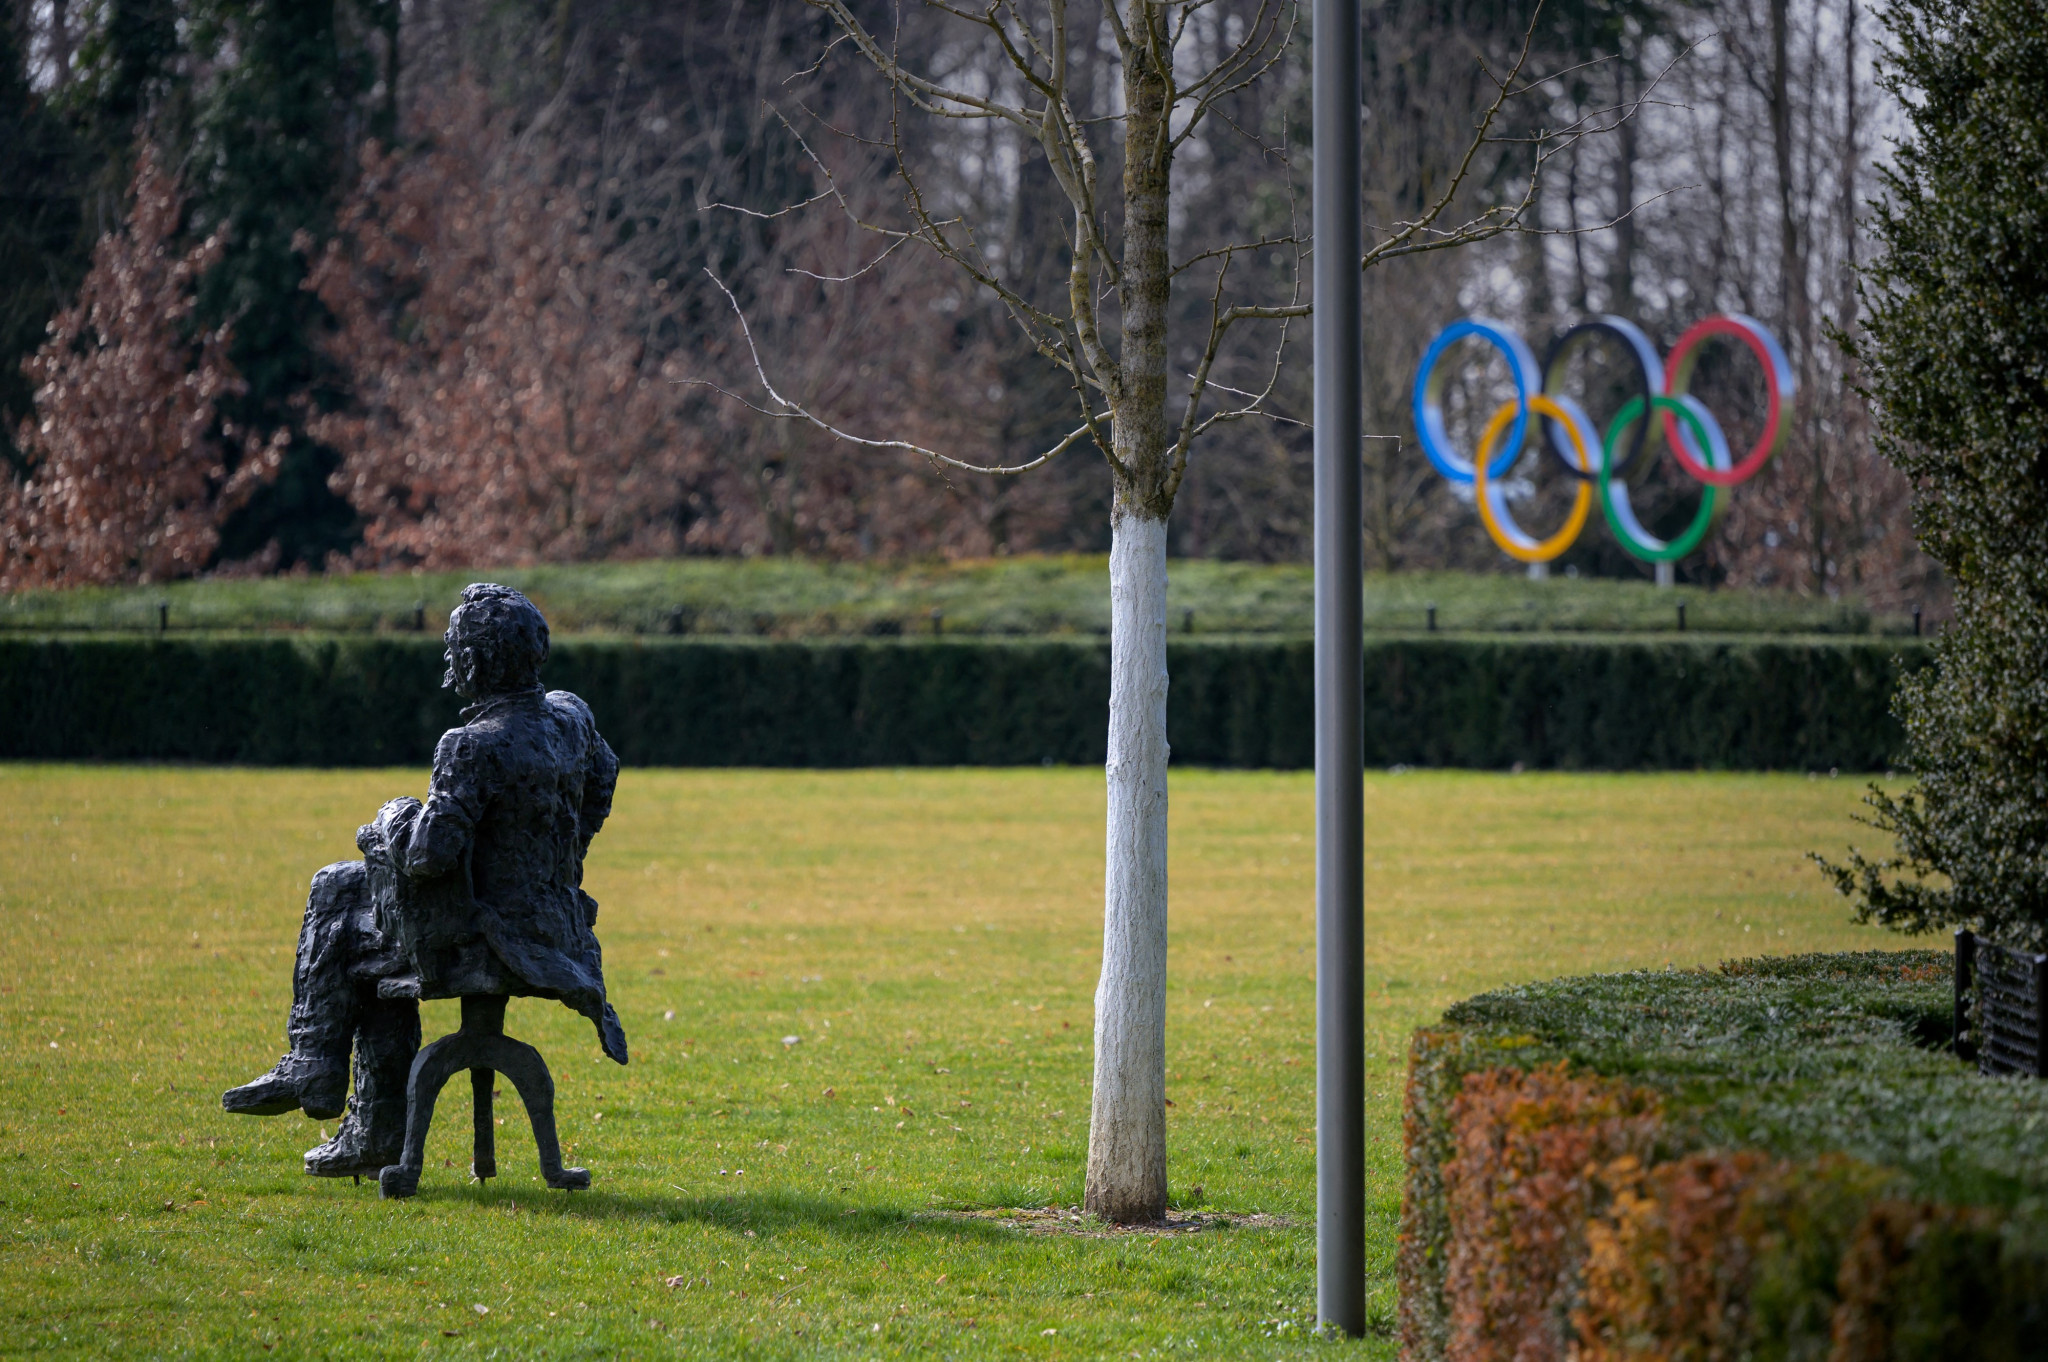 The Olympic motto of Faster, Higher, Stronger was adopted by the founder of the modern Olympic Movement Baron Pierre de Coubertin ©Getty Images